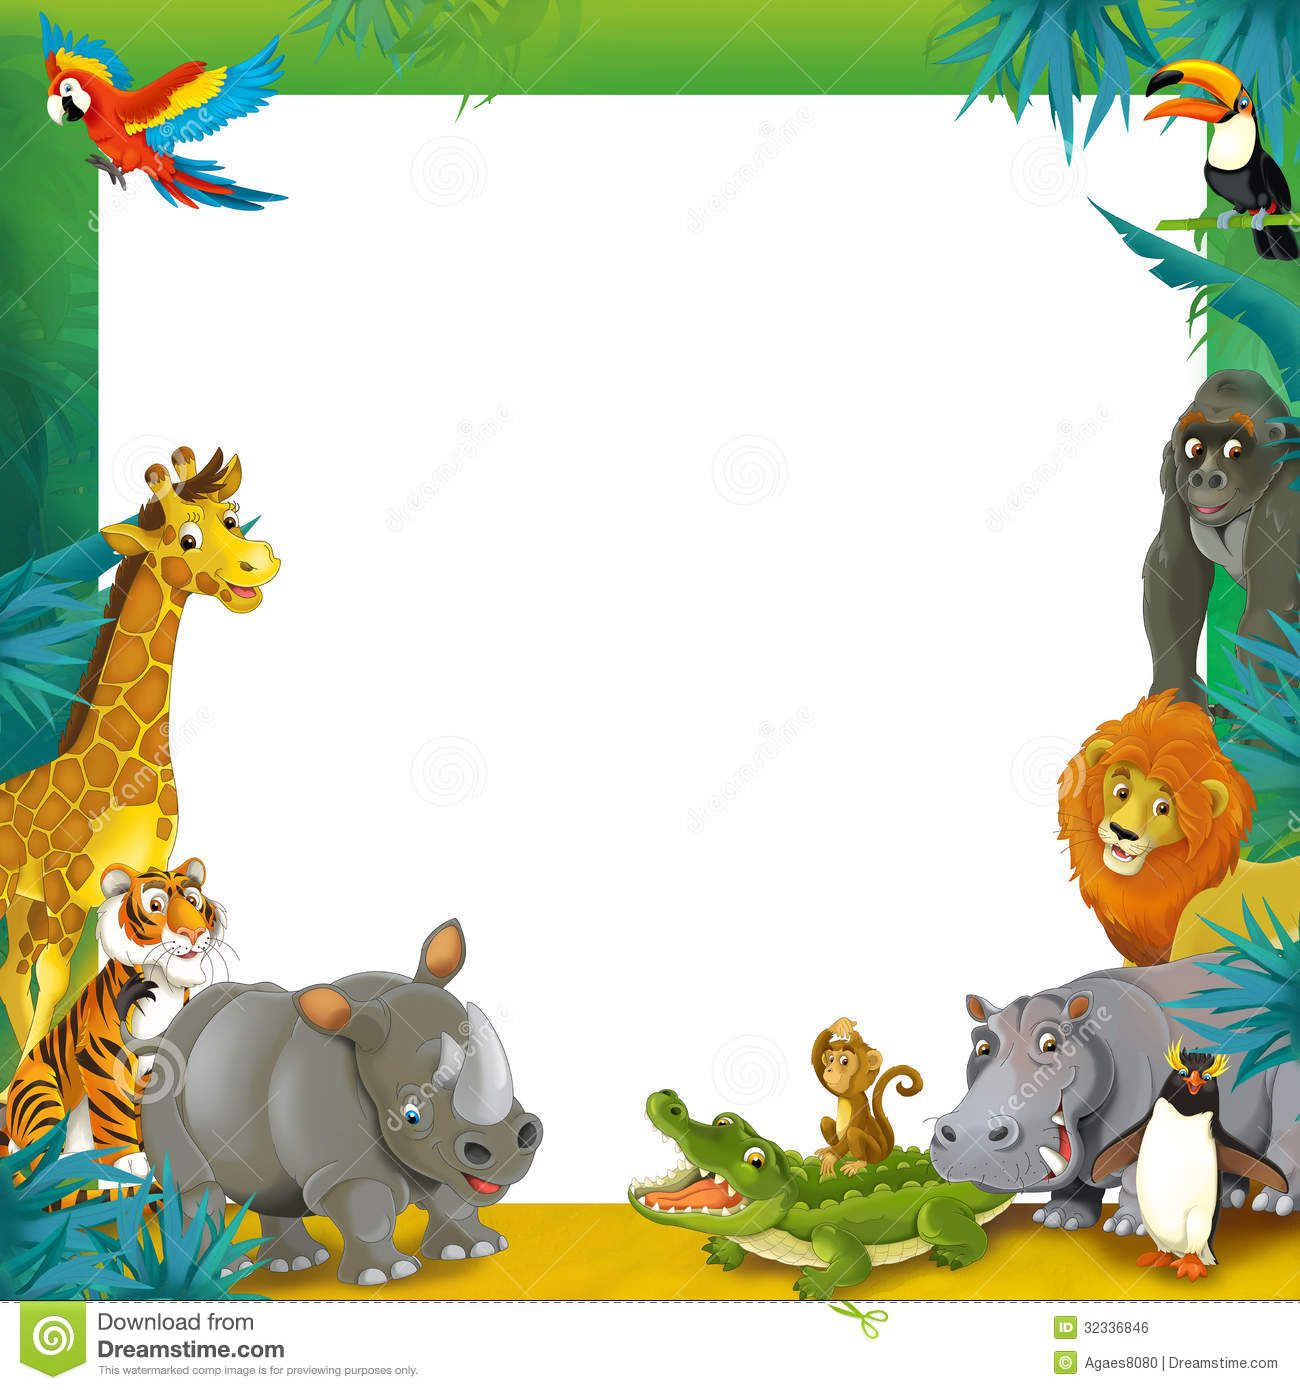 cartoon safari jungle frame border template illustration for